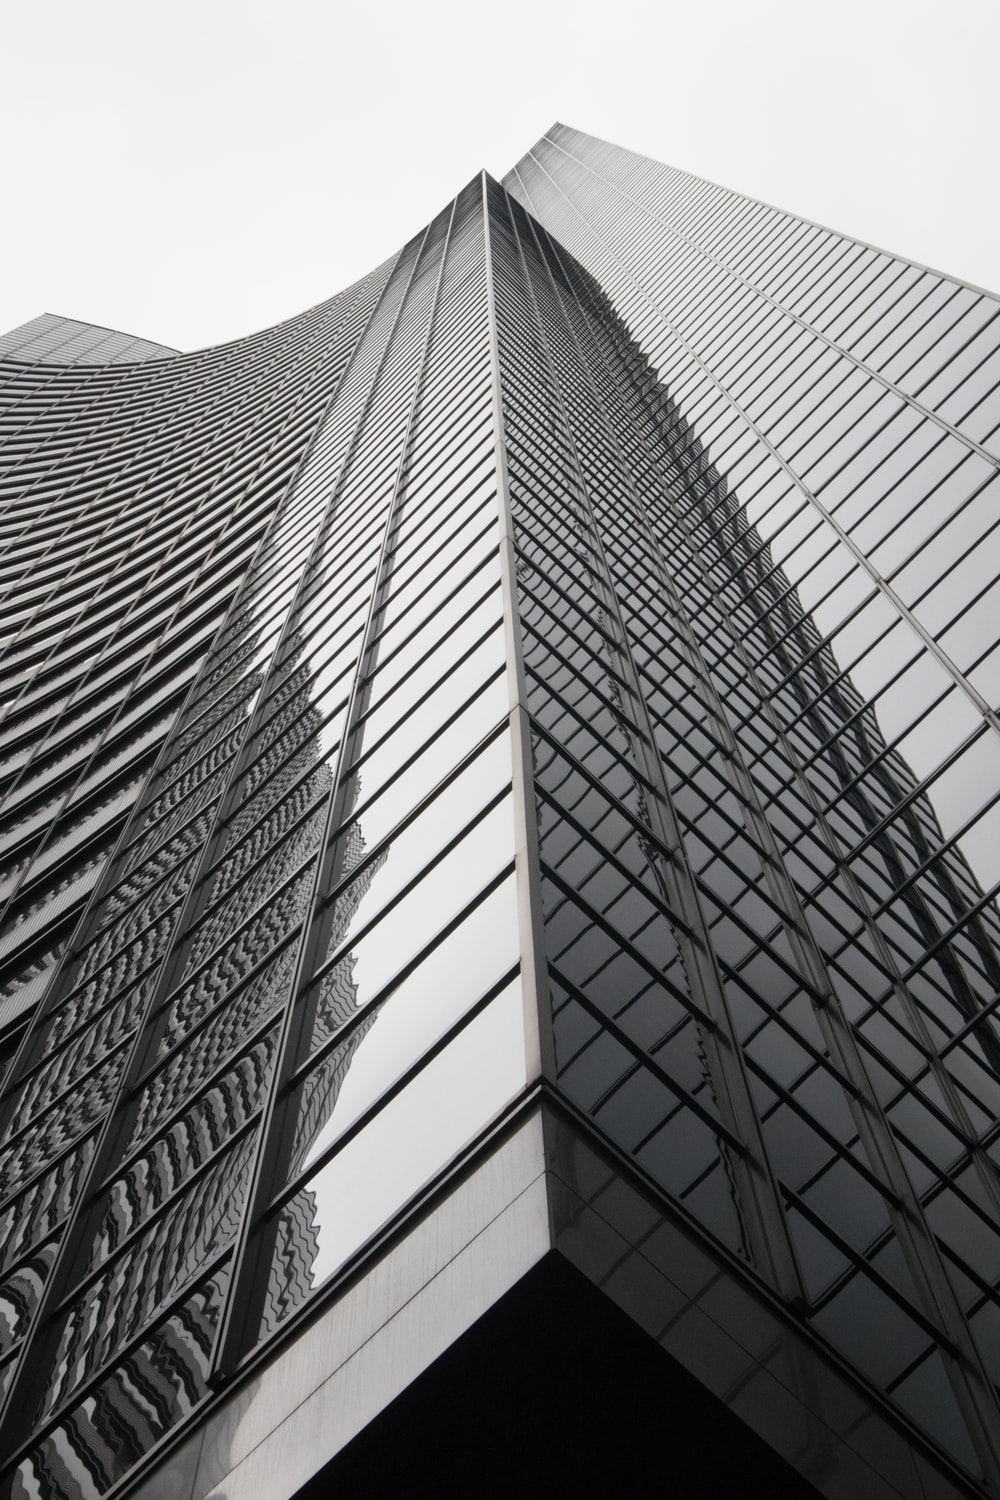 grey curtain building during daytime